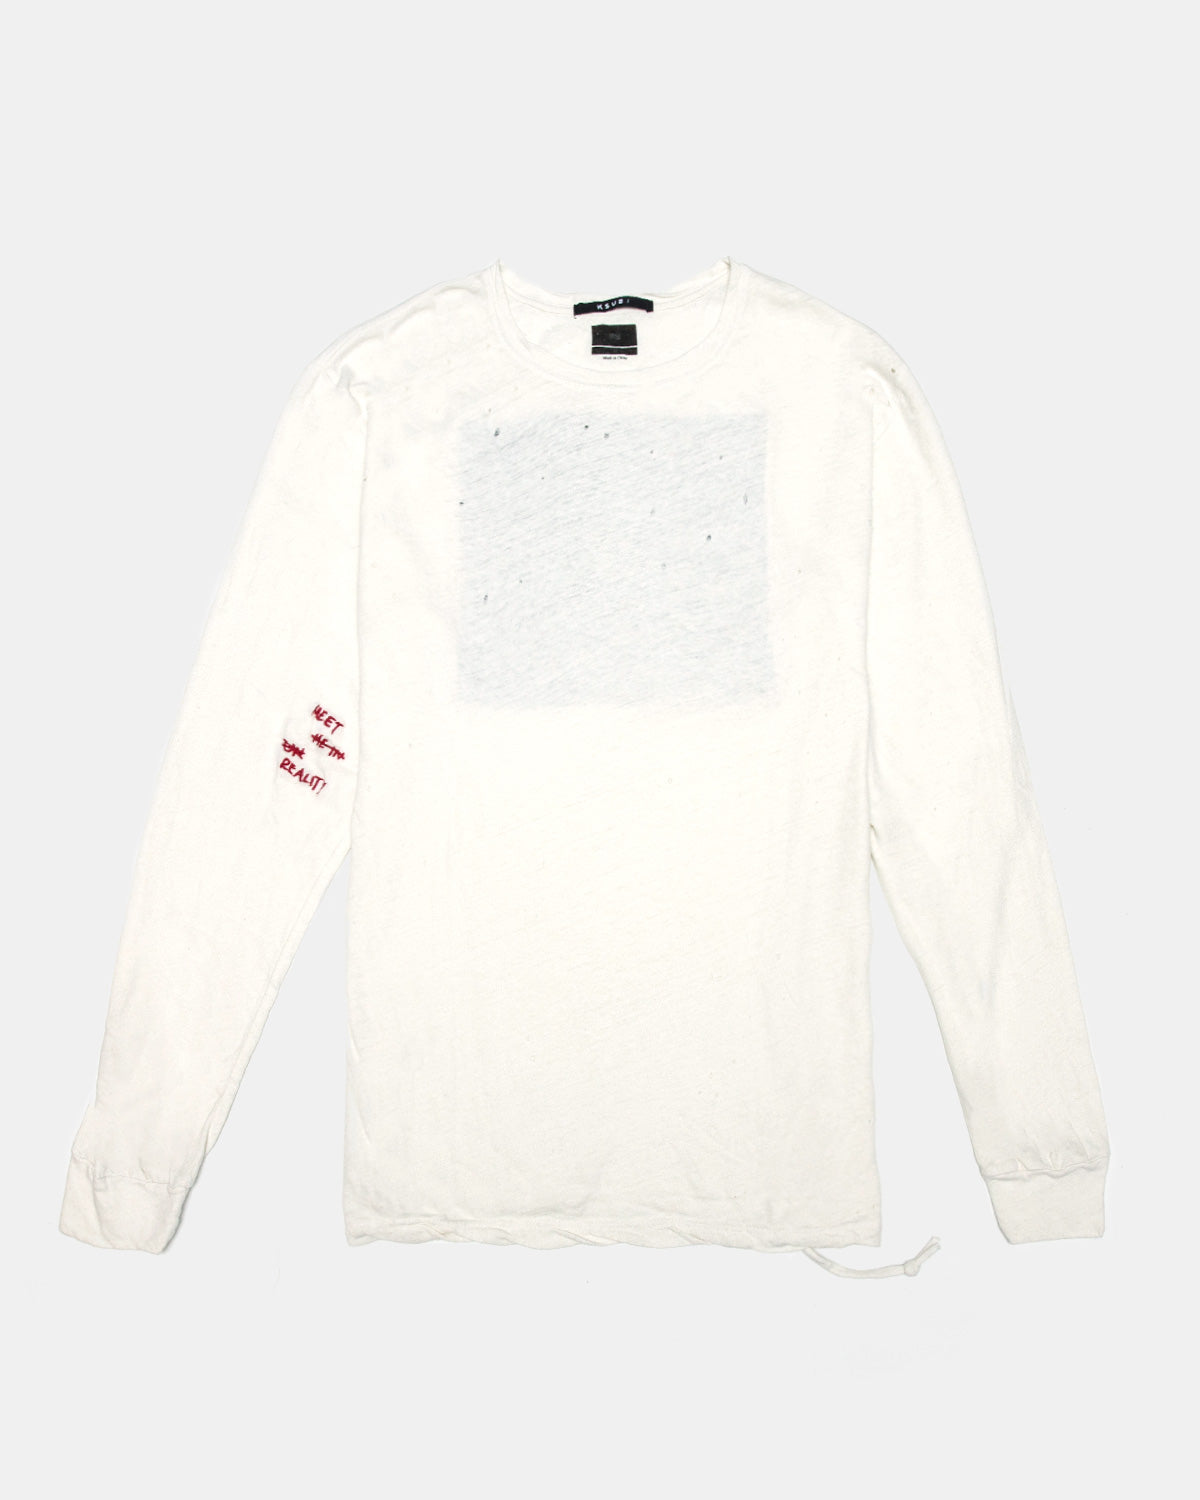 Ksubi - Caring Long Sleeve Tee (Worn in White)